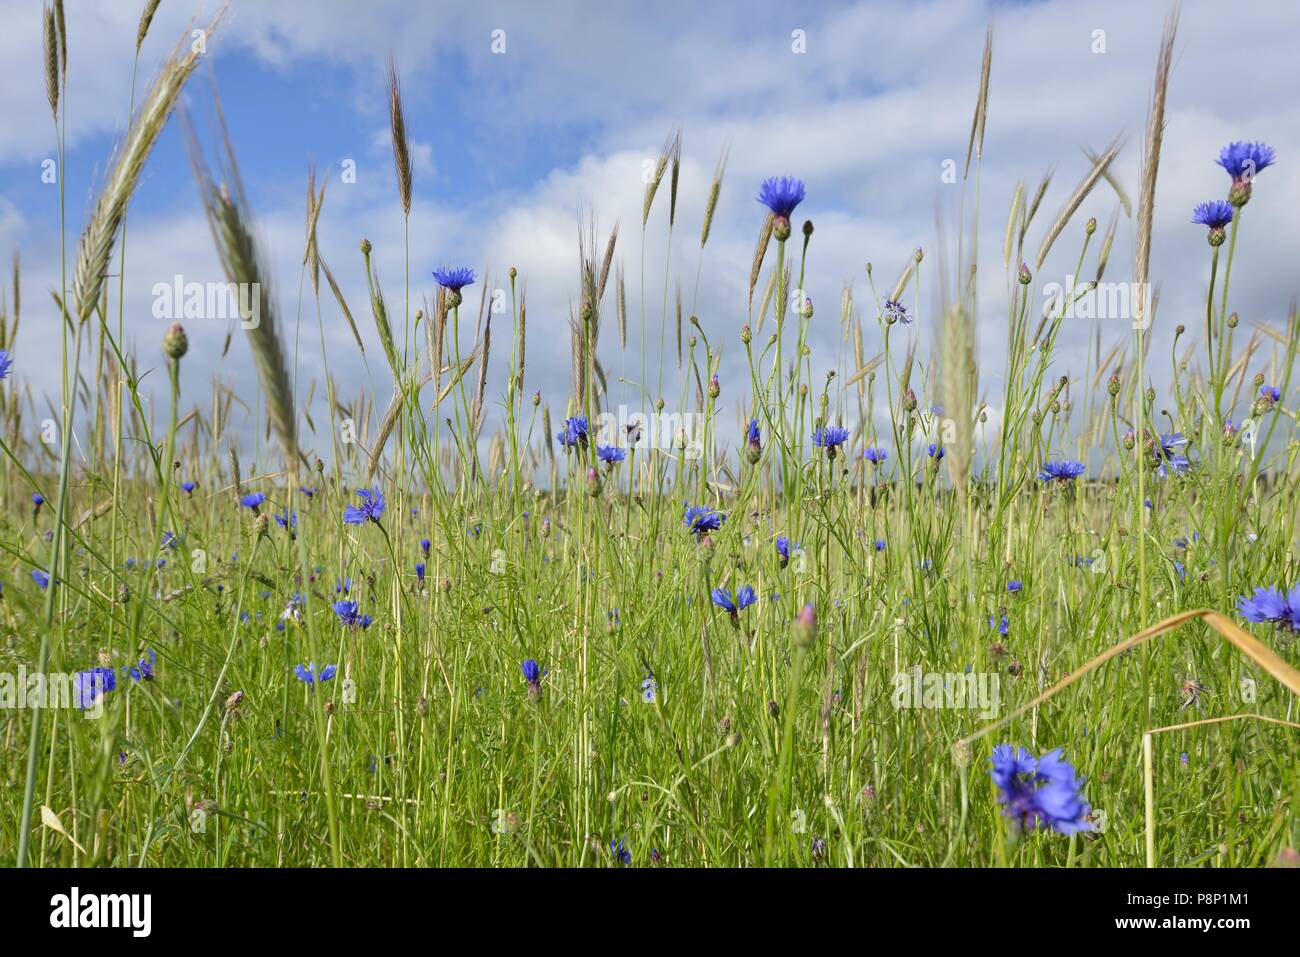 Flowering Cornflowers in wheatfield - Stock Image